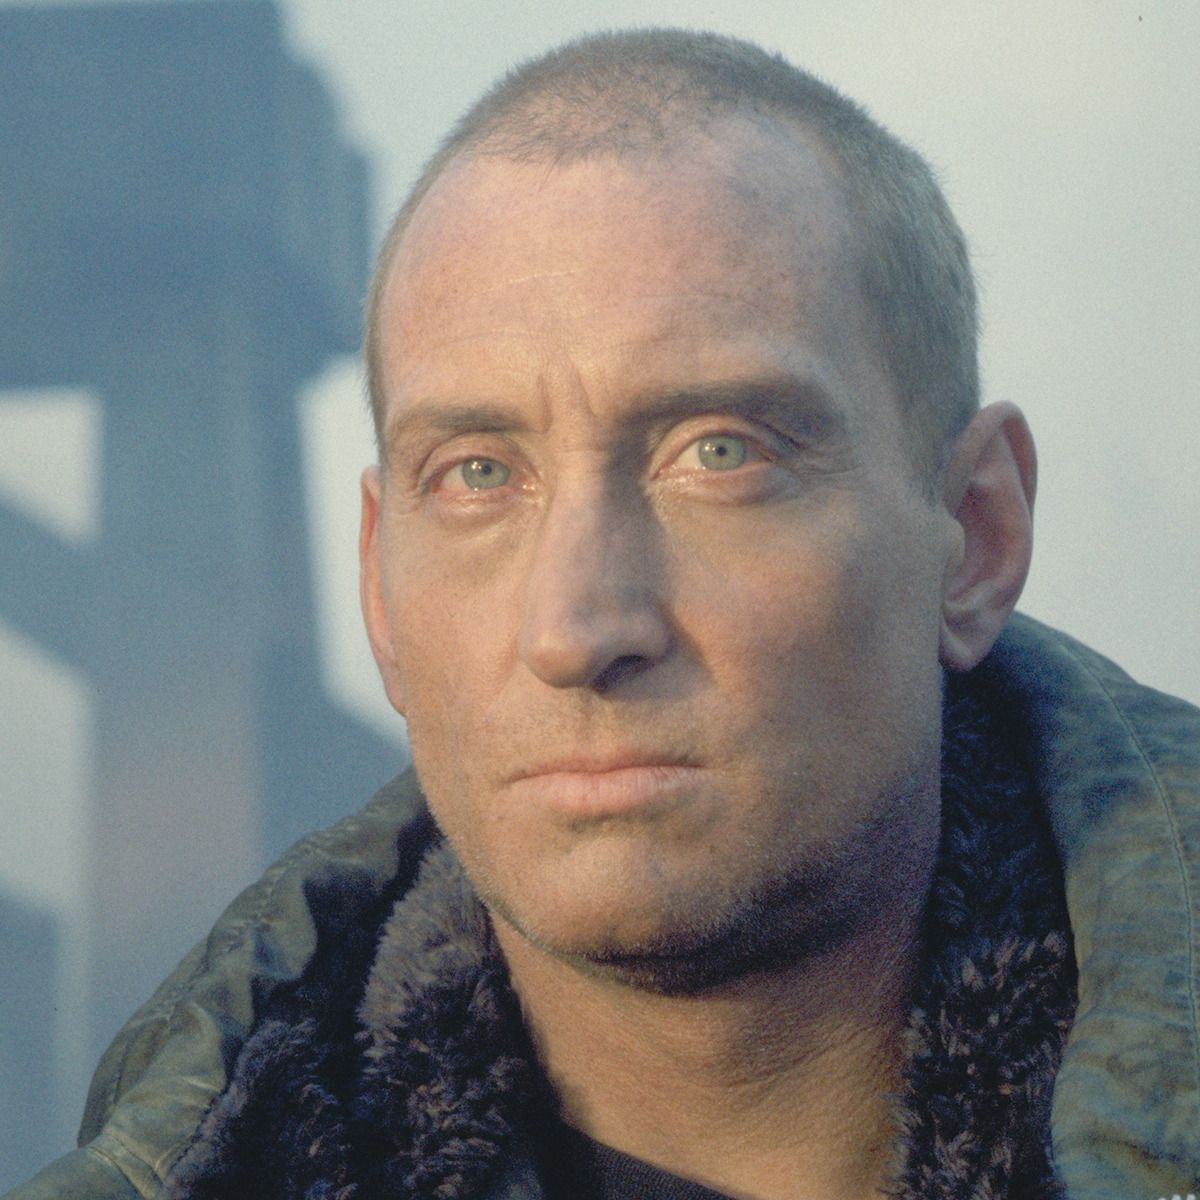 Charles Dance ALIEN ANTHOLOGY Its Charles Dances birthday Lets celebrate by